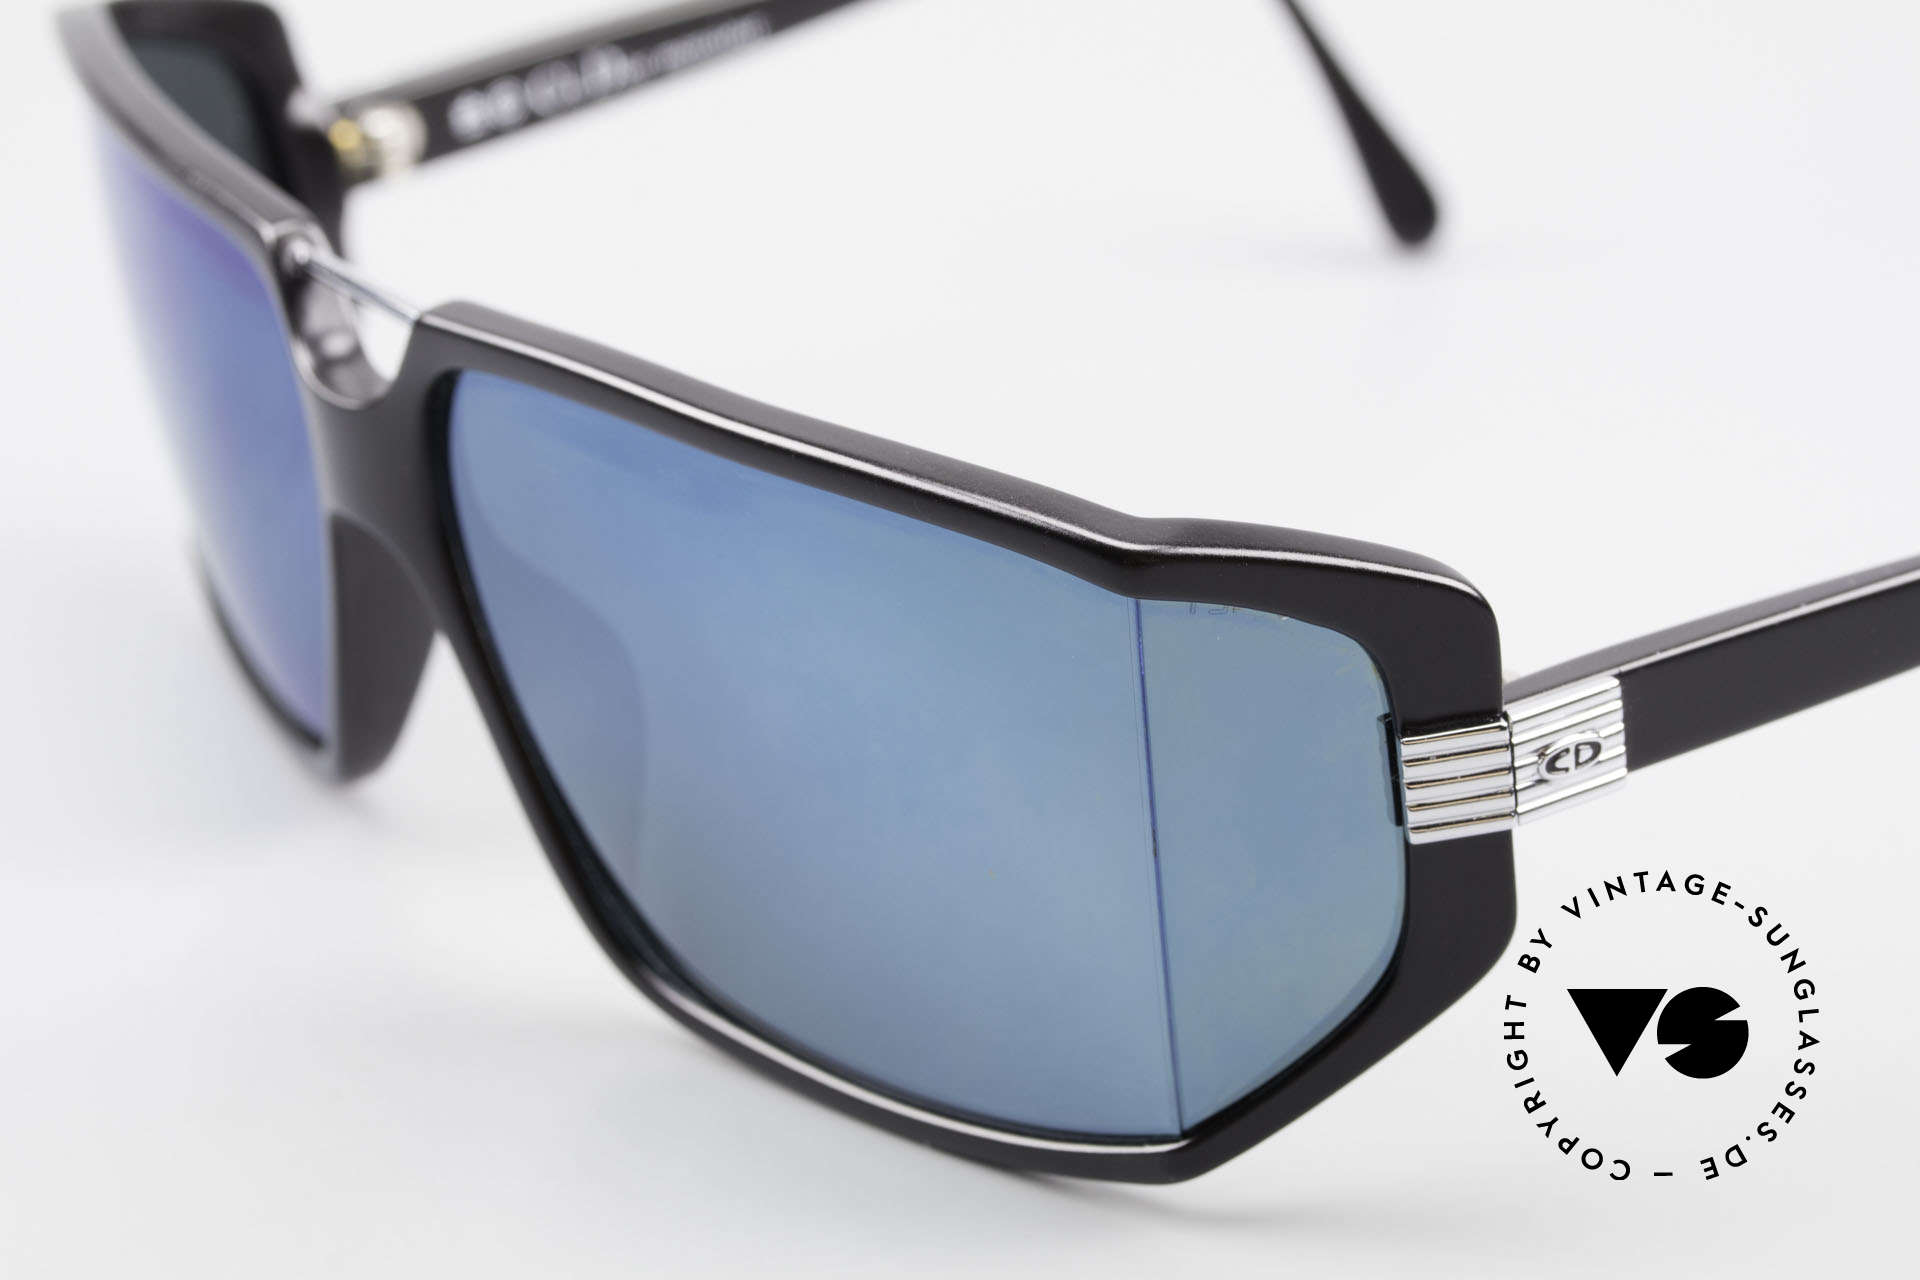 Christian Dior 2440 Monsieur 80's Men's Shades, with blue-mirrored polycarbonate  lenses (100% UV), Made for Men